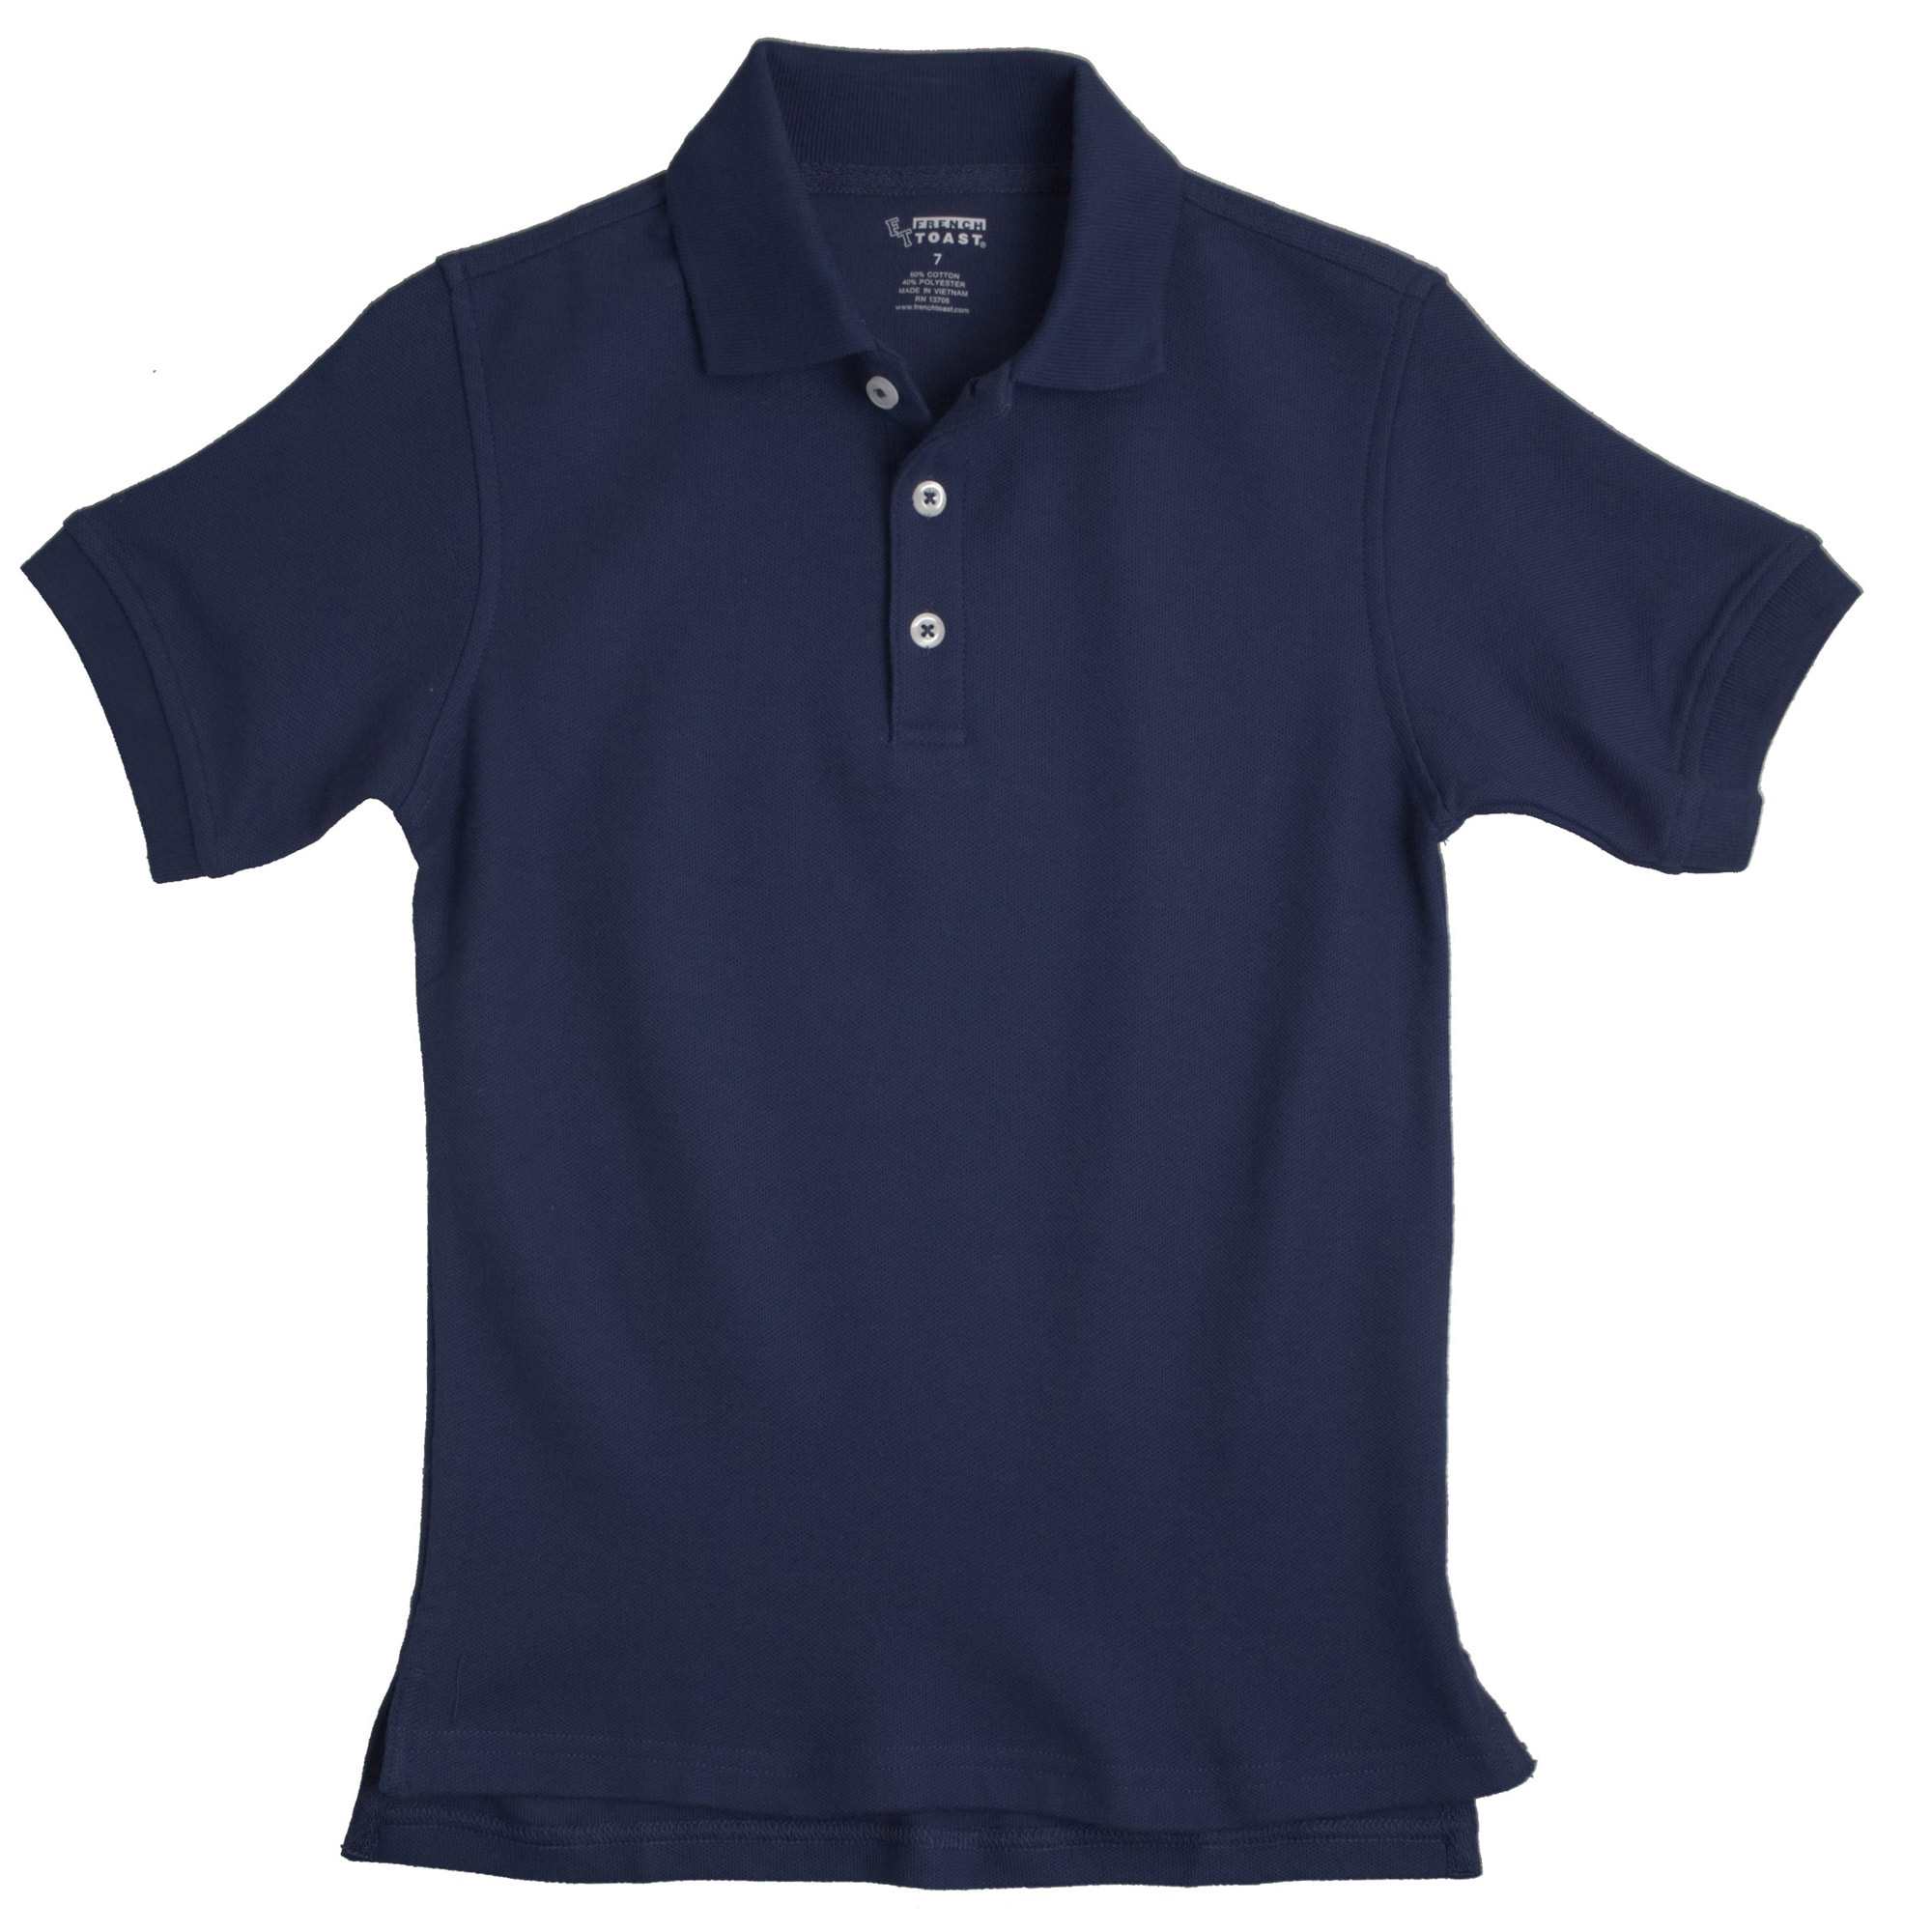 French Toast Boy's School Uniform Navy Polos Size 14 (Set of 2)